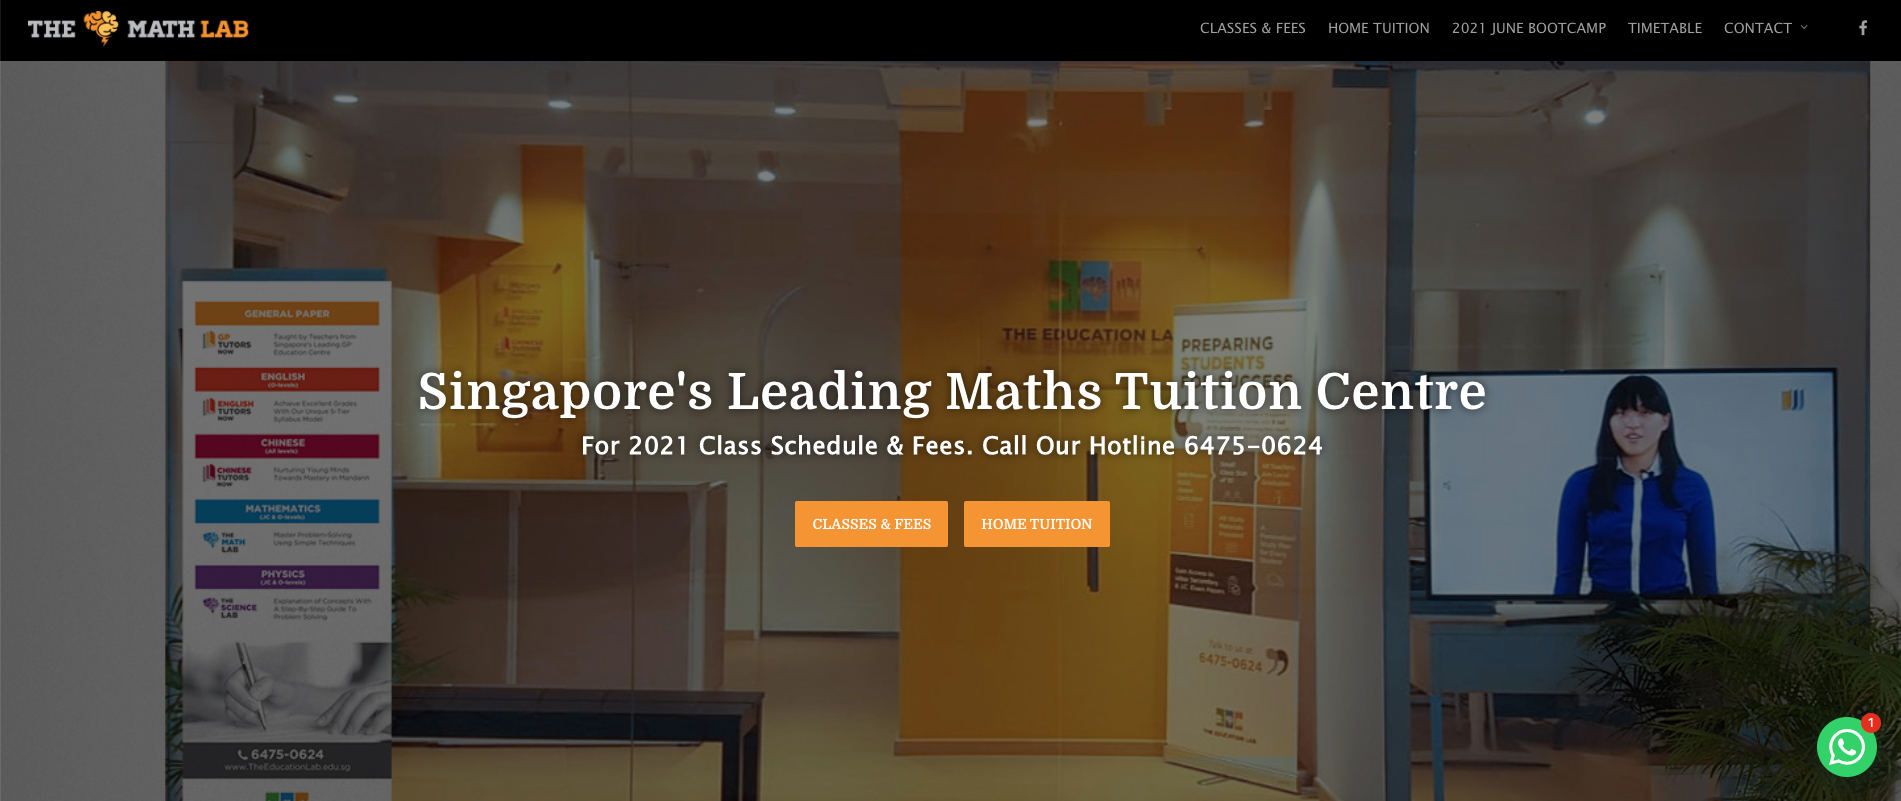 The Math Lab Primary School Tuition